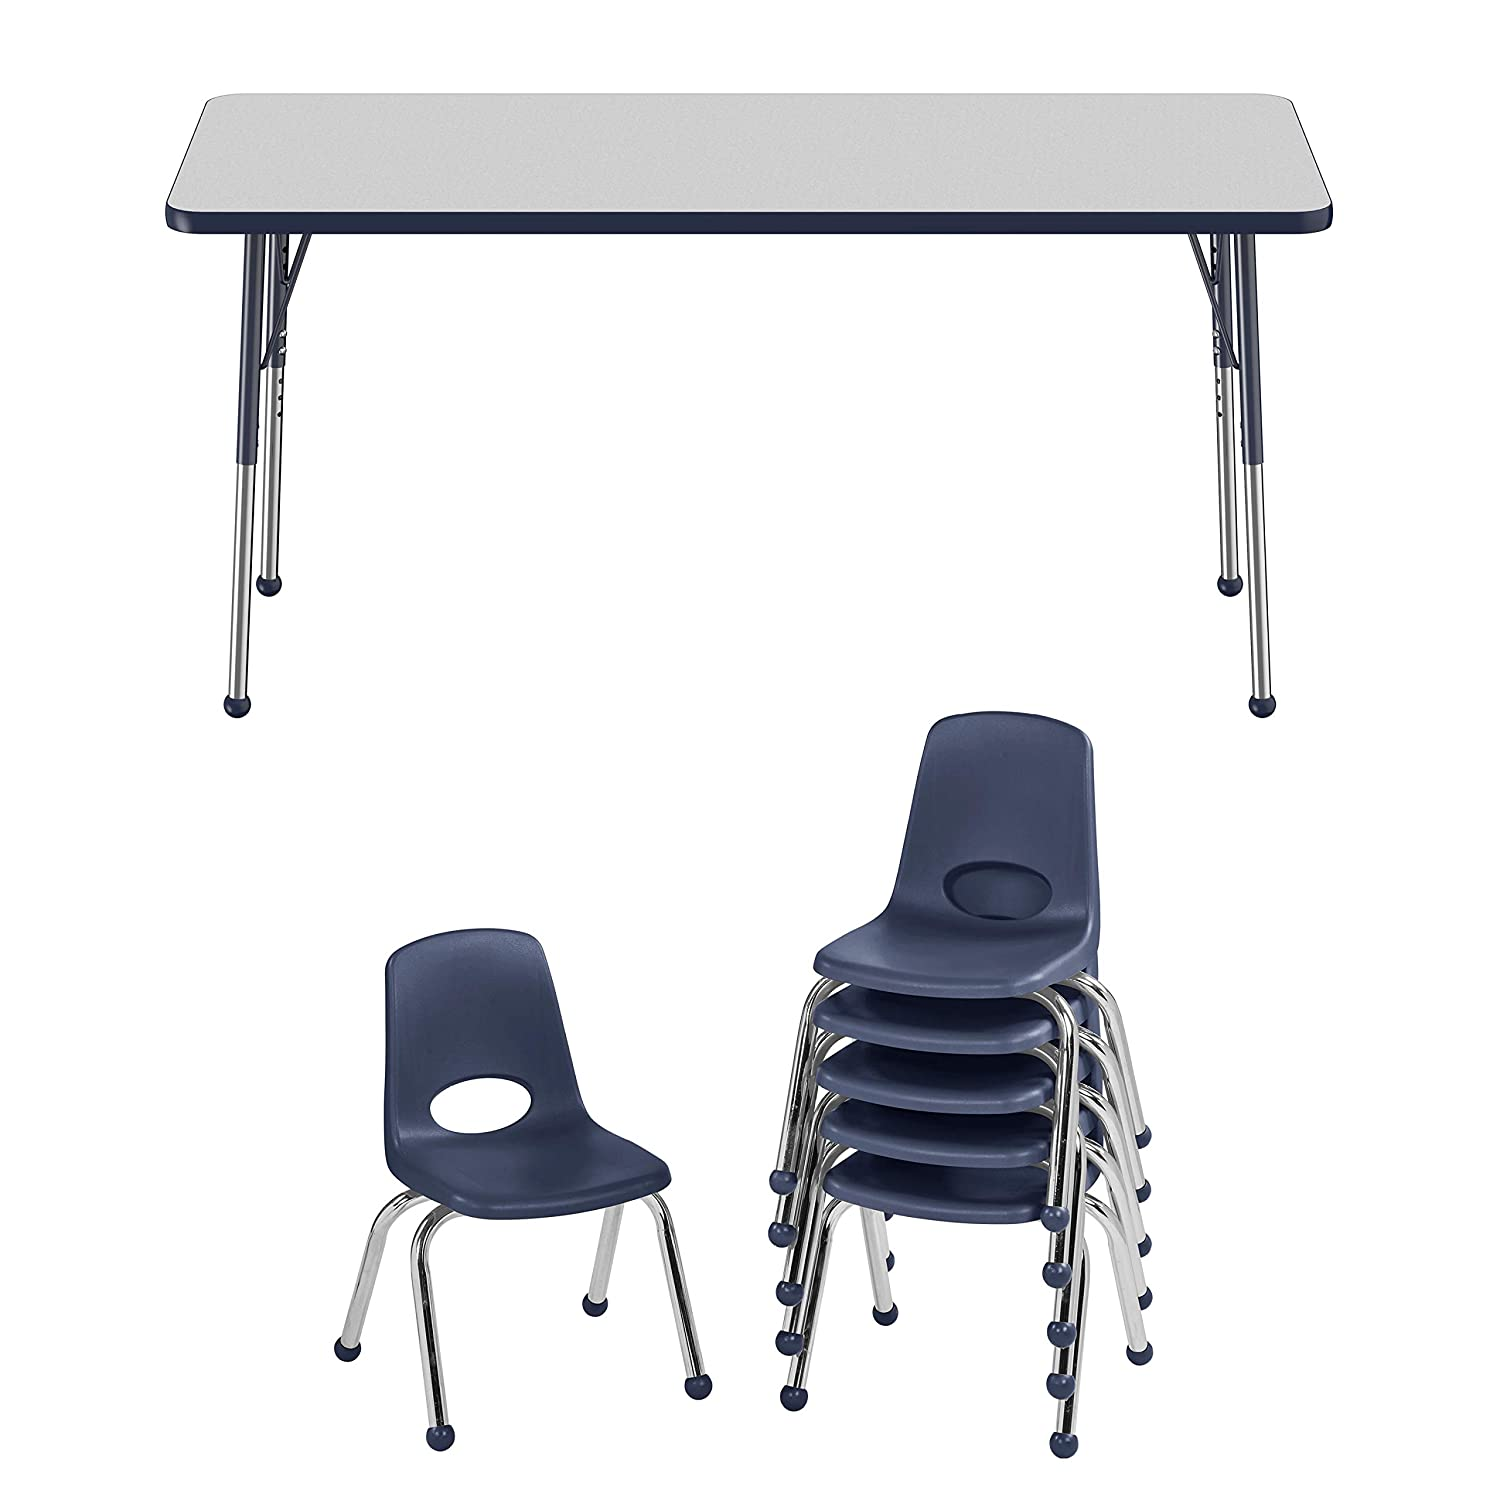 FDP Rectangle Activity School and Office Table Standard Legs with Ball Glides and Six 14 inch Navy School Stack Chairs 30 x 60 inch Gray Top and Navy Edge